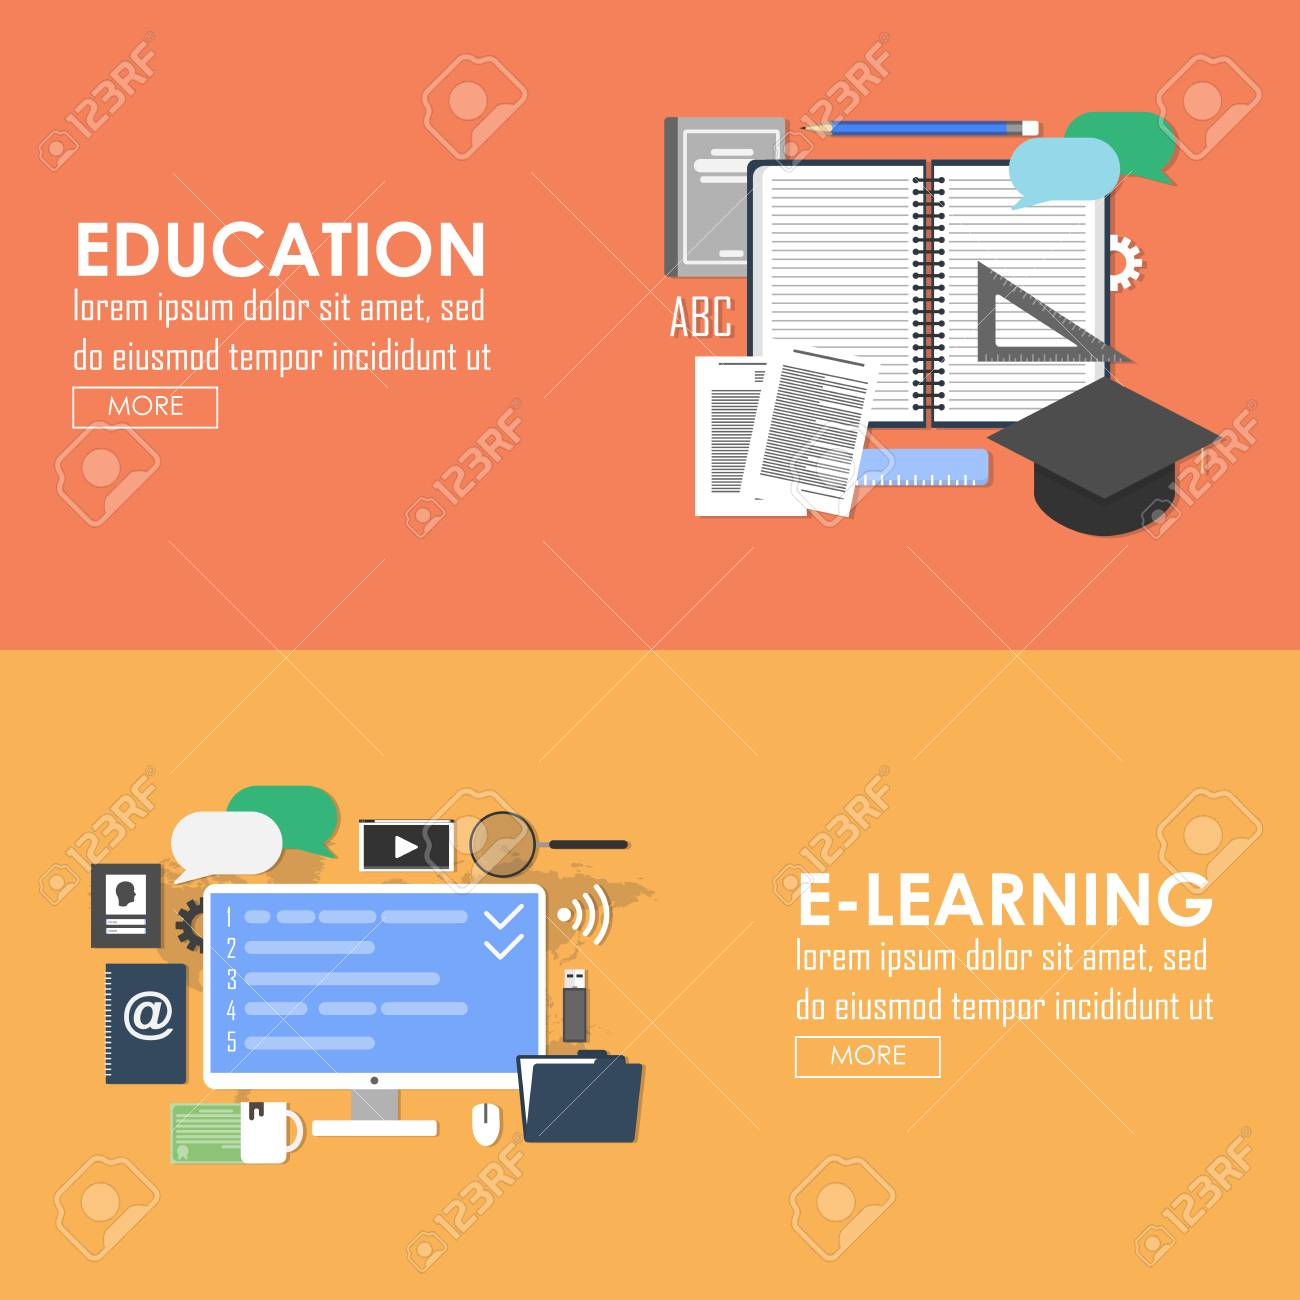 Education And E Learning Vector Banner Online Learning Flat Royalty Free Cliparts Vectors And Stock Illustration Image 45243037